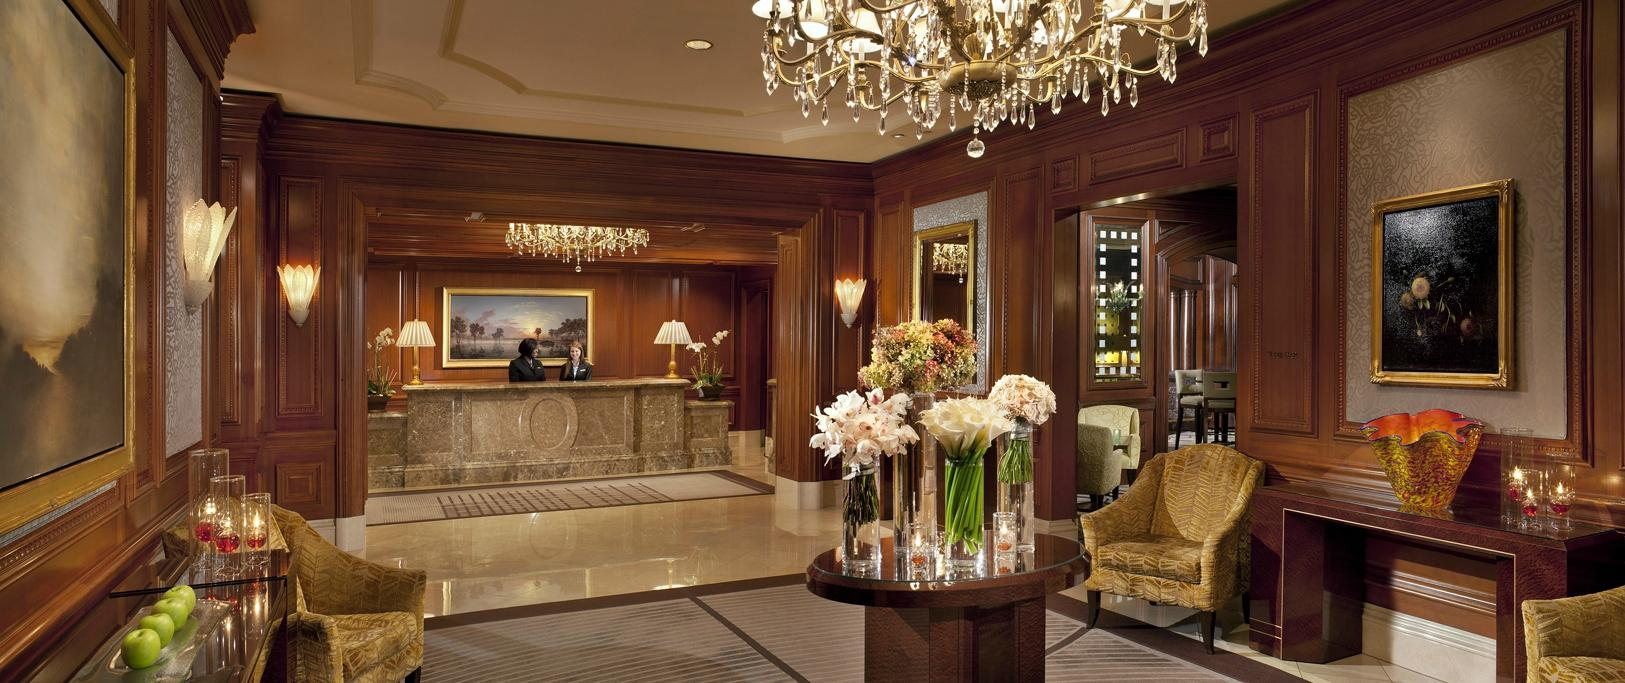 The Ritz-Carlton, Washington DC